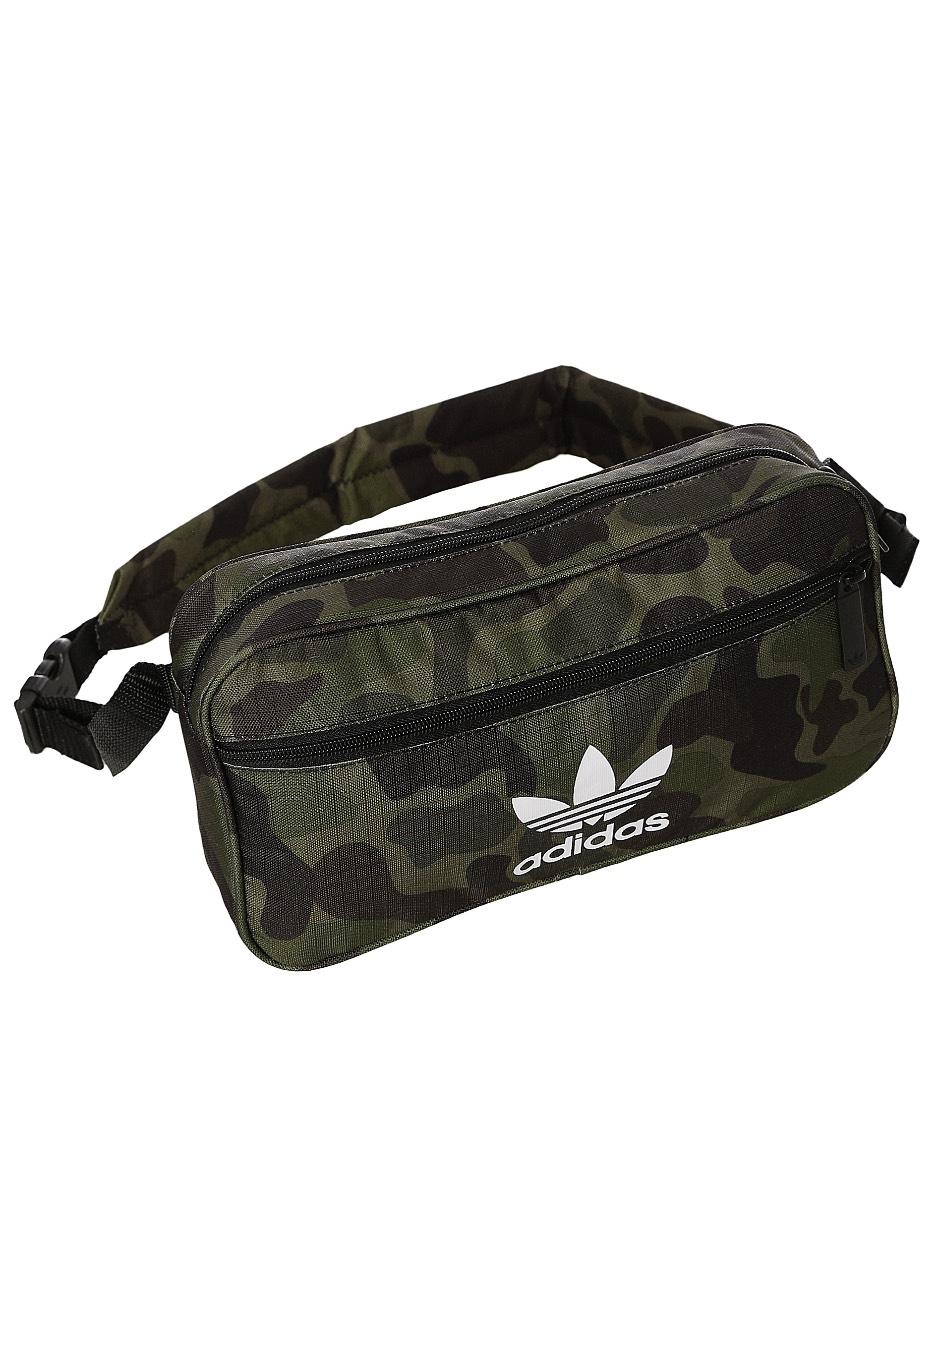 adidas cross camo sac banane boutique streetwear fr. Black Bedroom Furniture Sets. Home Design Ideas